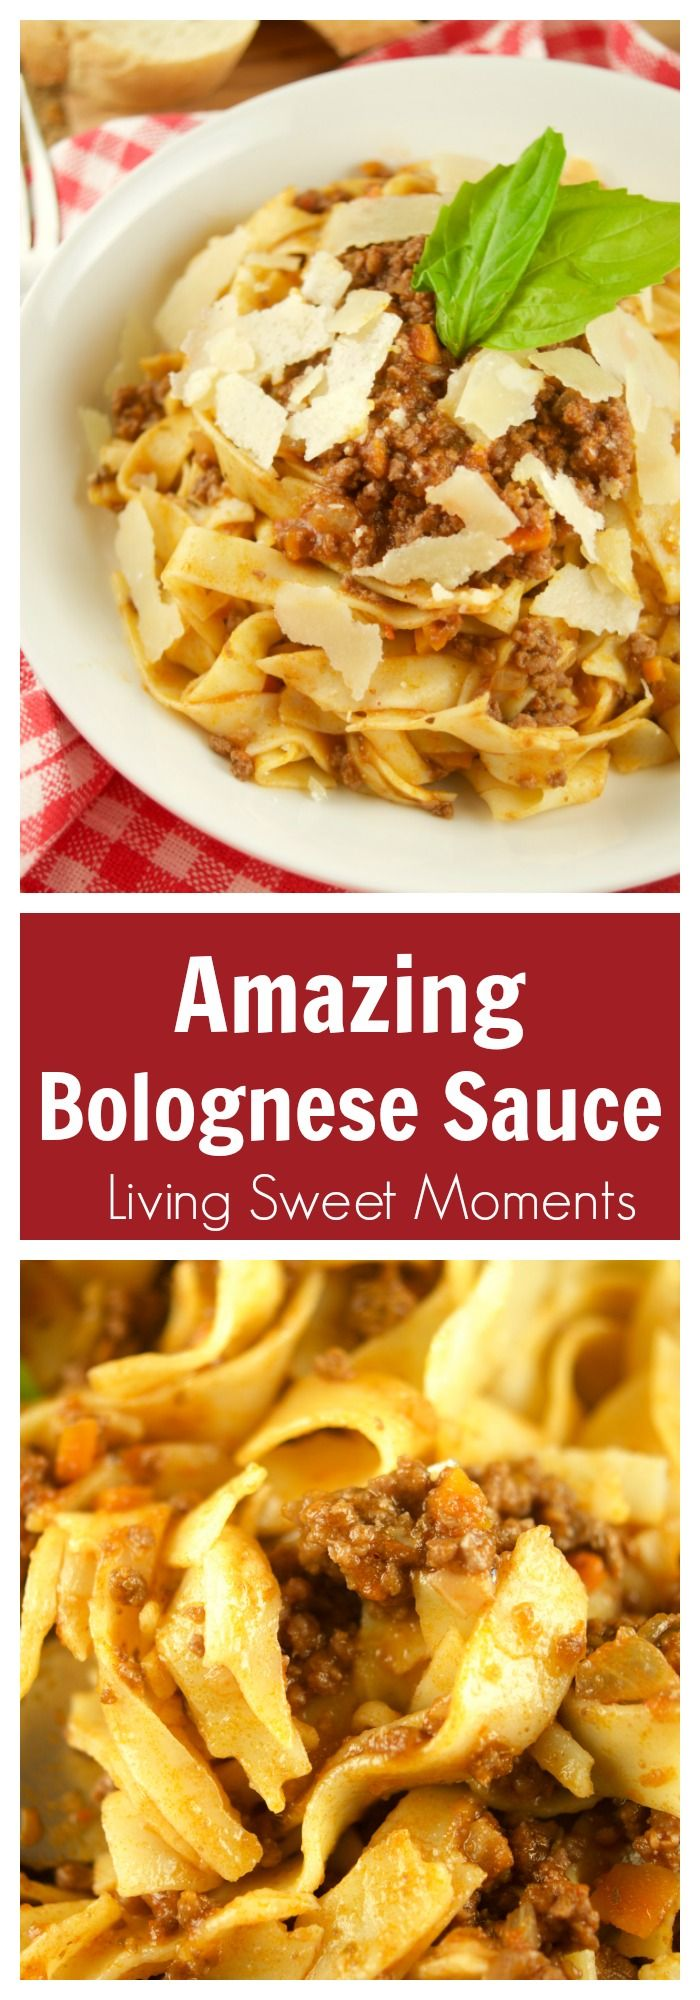 This easy Bolognese Sauce Recipe tastes amazing and is perfect to serve with pasta, lasagna, etc. A truly authentic Italian flavor for dinner. Can be frozen too! More on livingsweetmoments.com